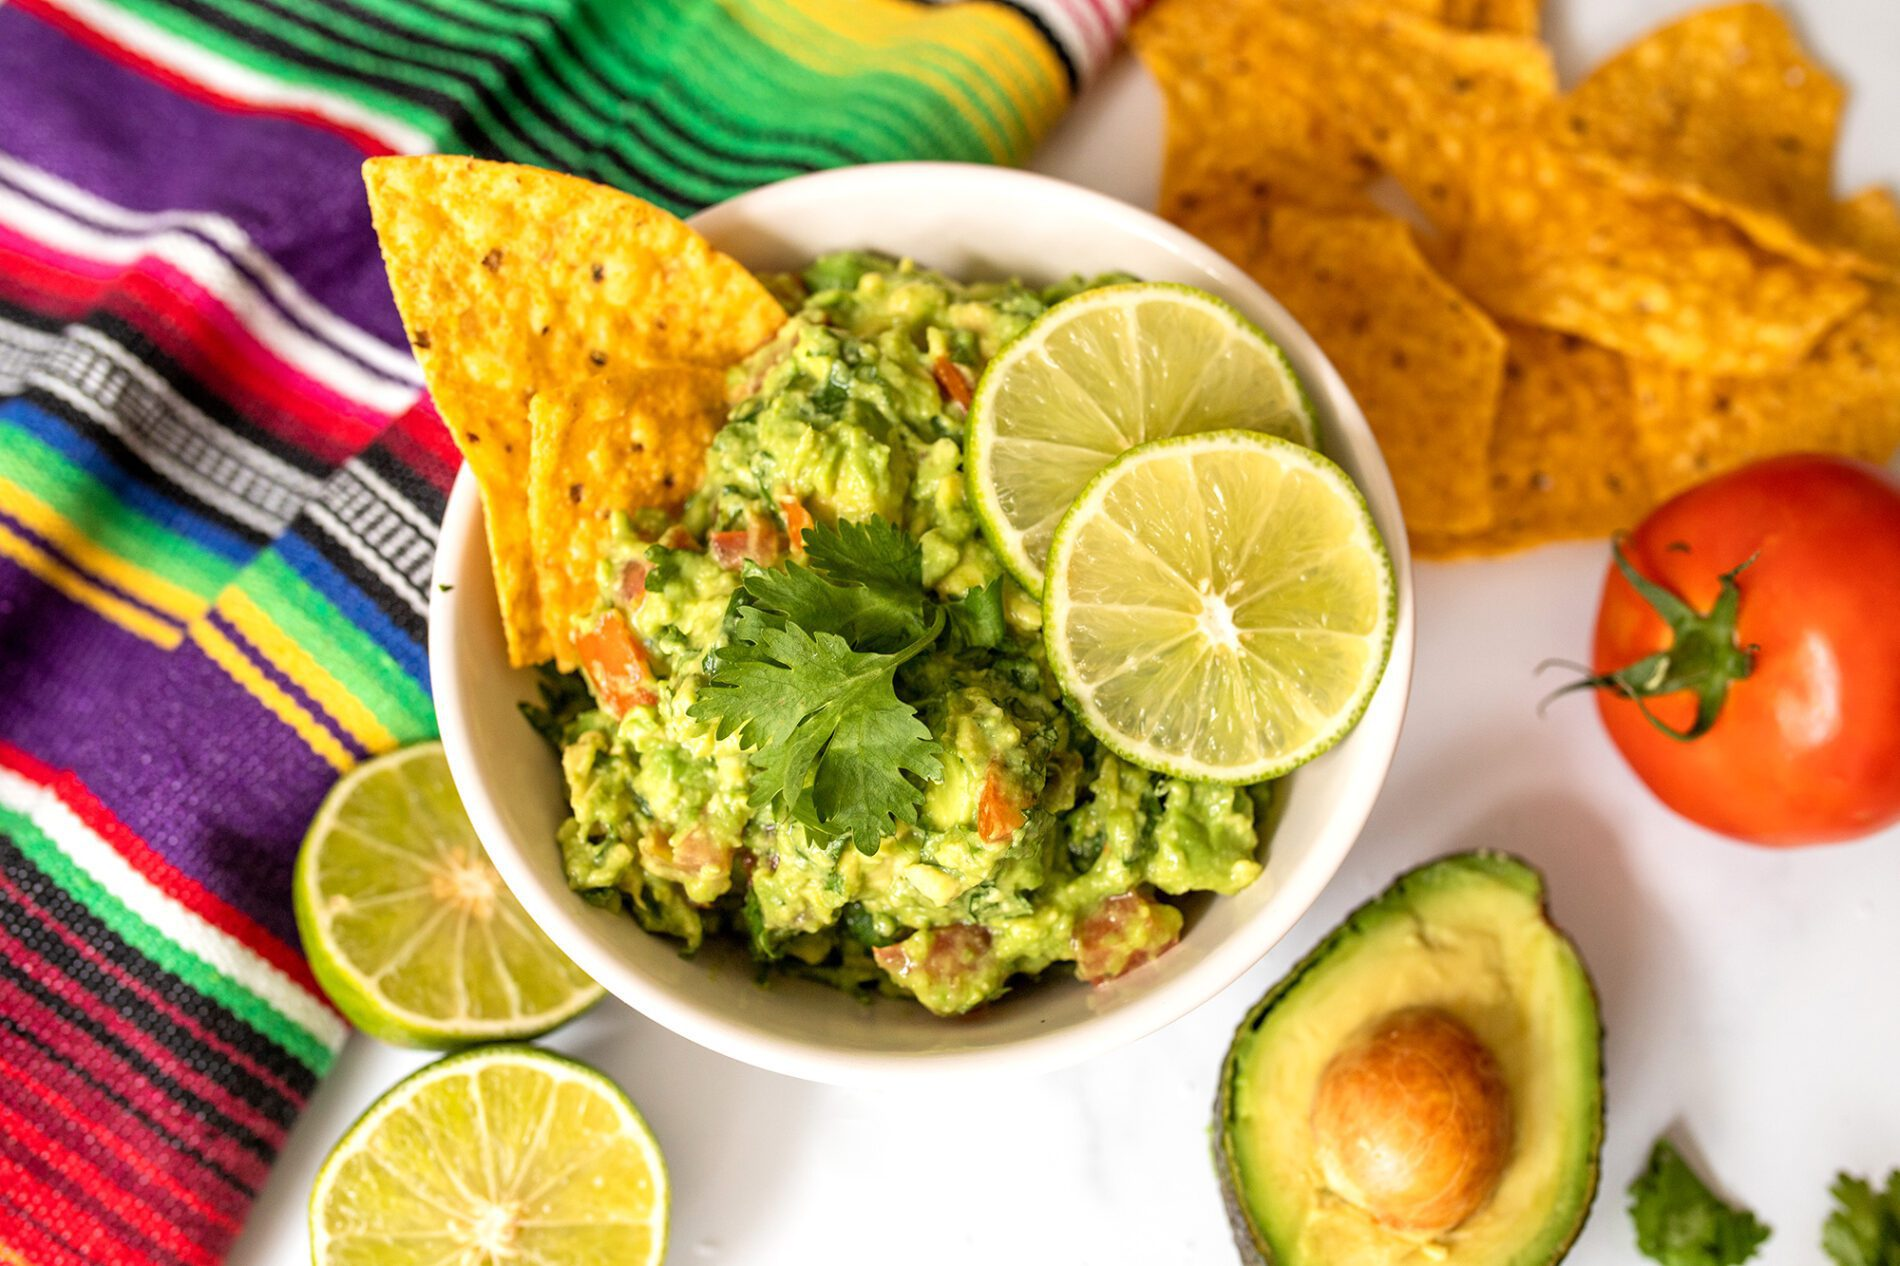 bowl of homemade guacamole with ingredients